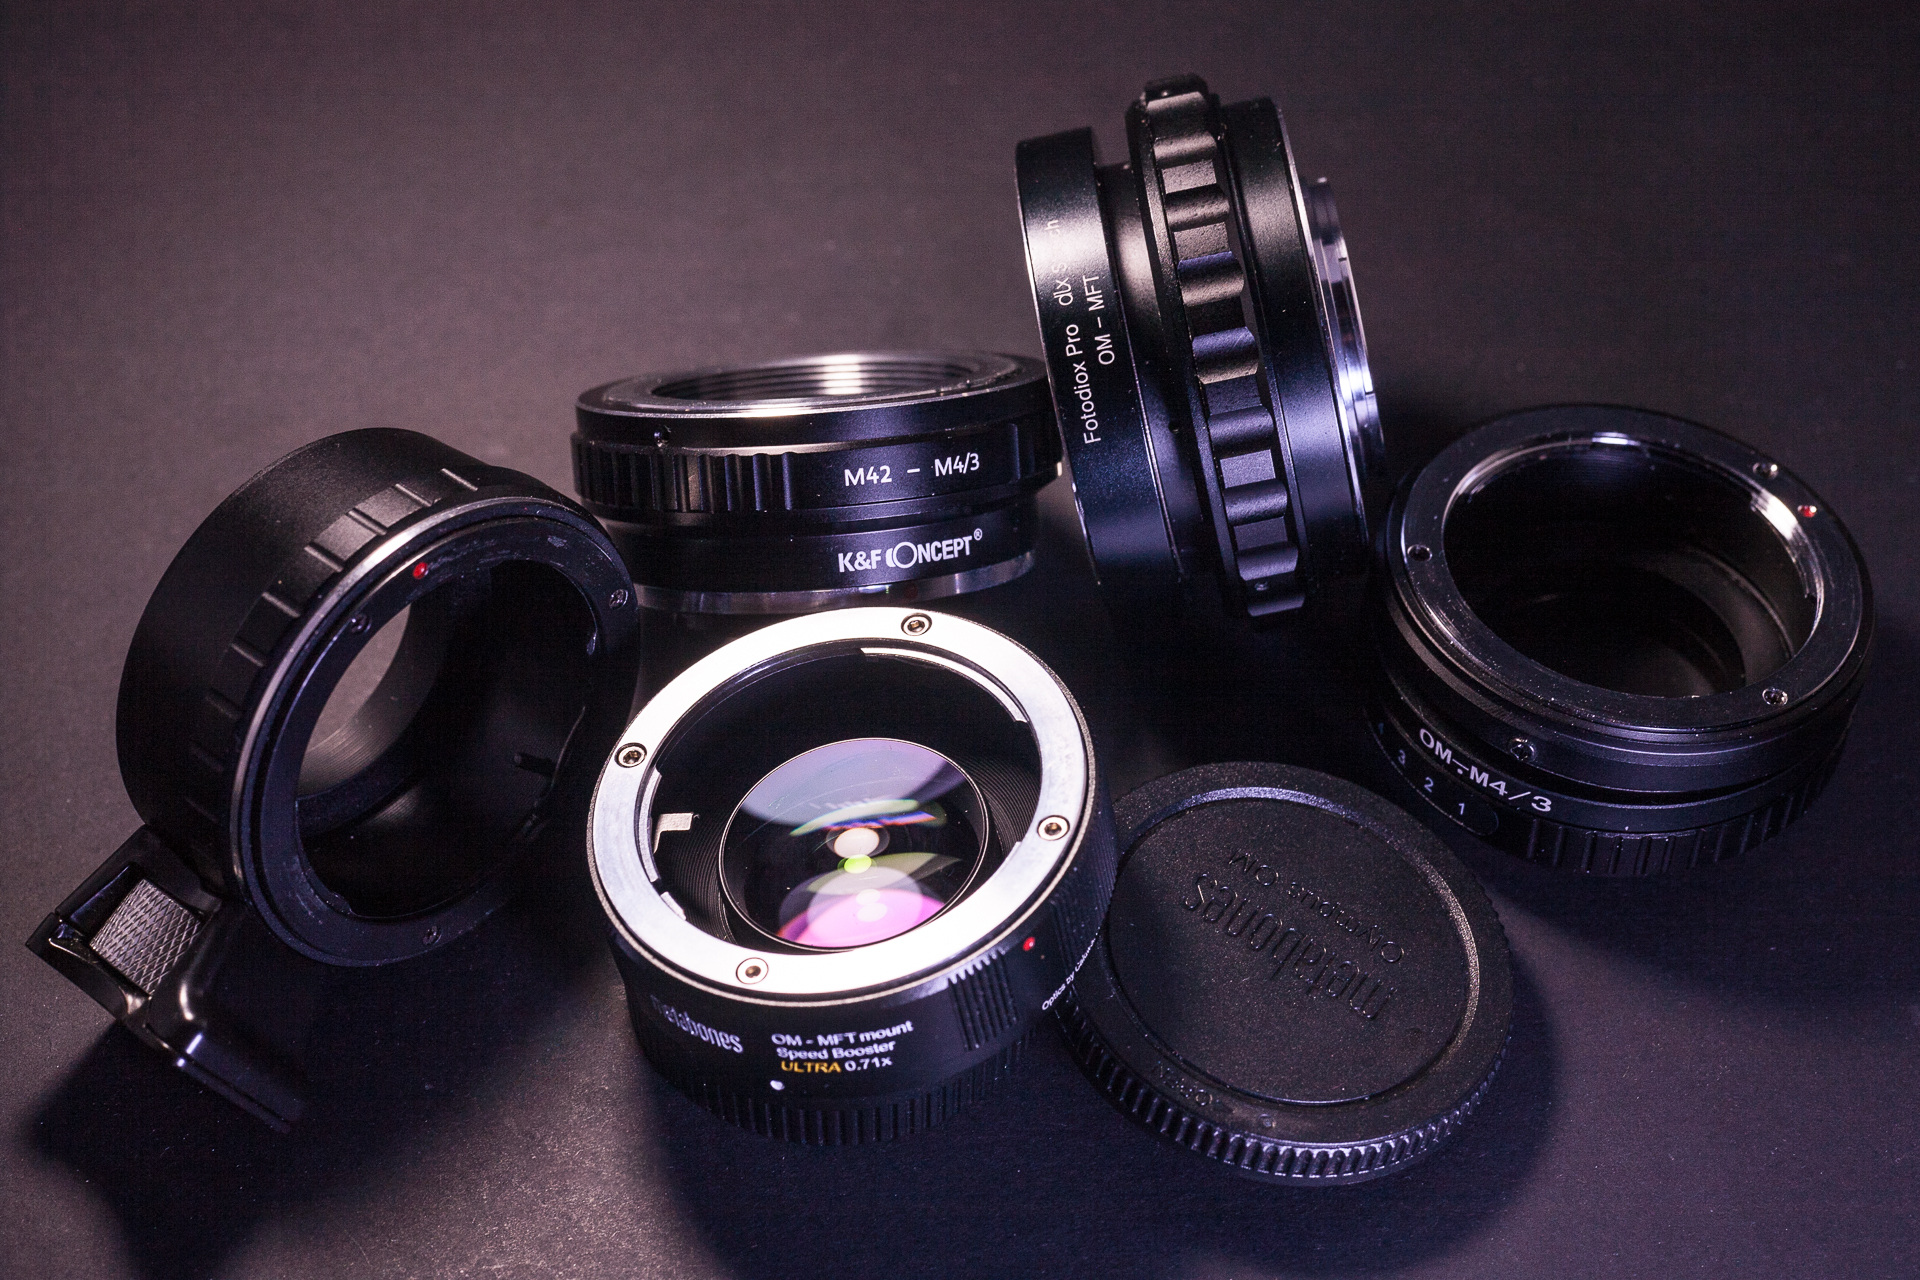 A selection of MFT adapters - tripod, screw mount, helicoid, shift, focal reducer